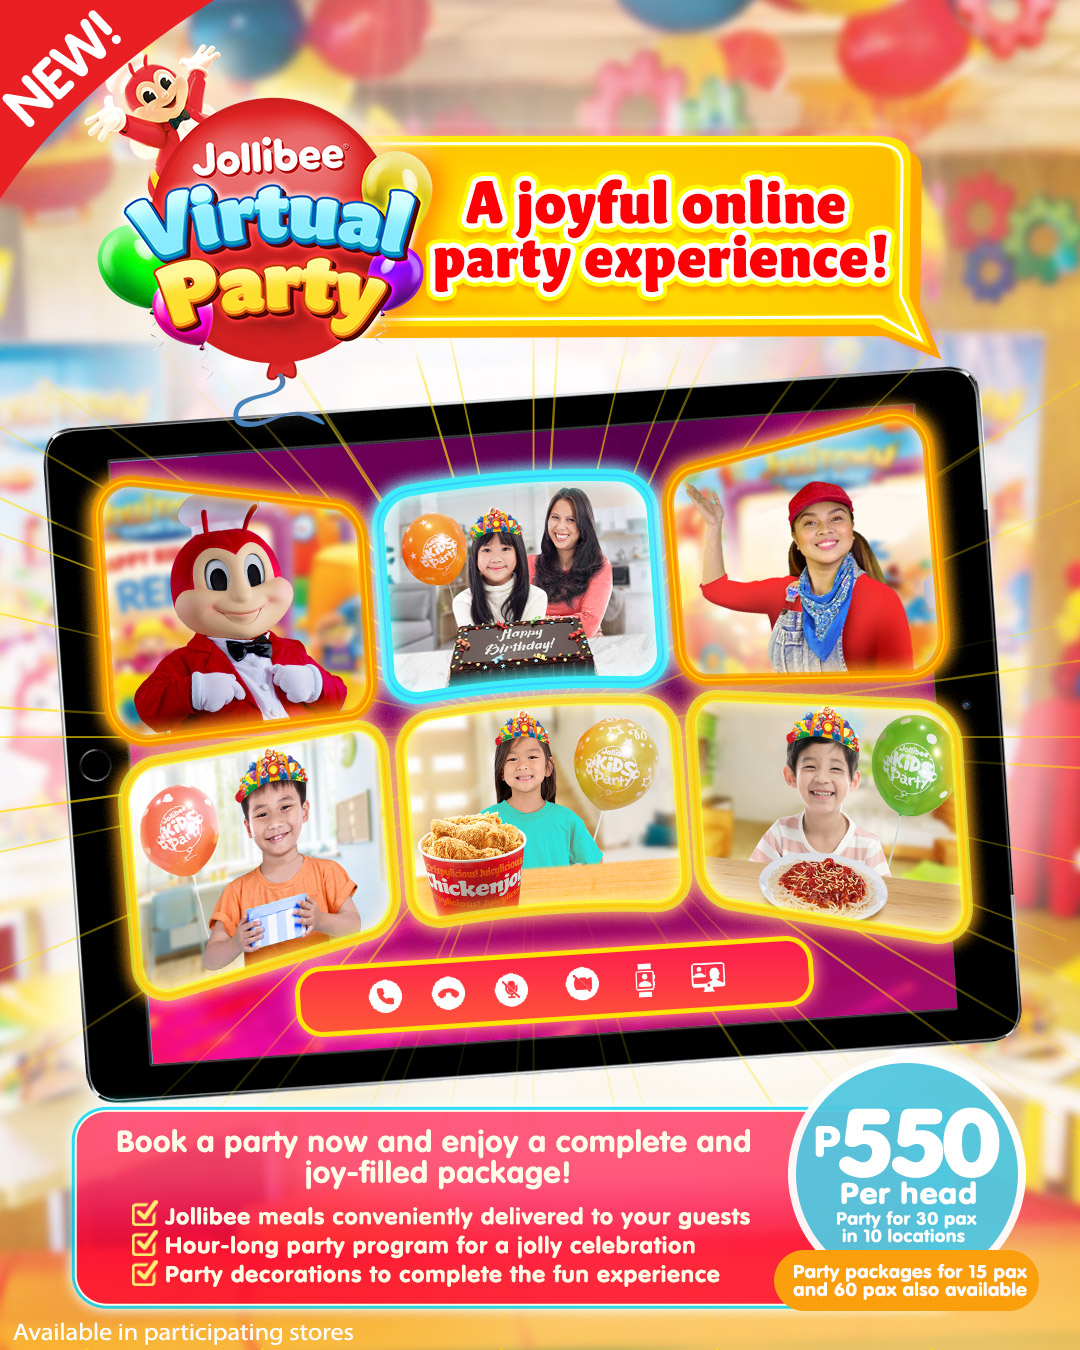 Joyful Celebrations with Jollibee's Virtual Party